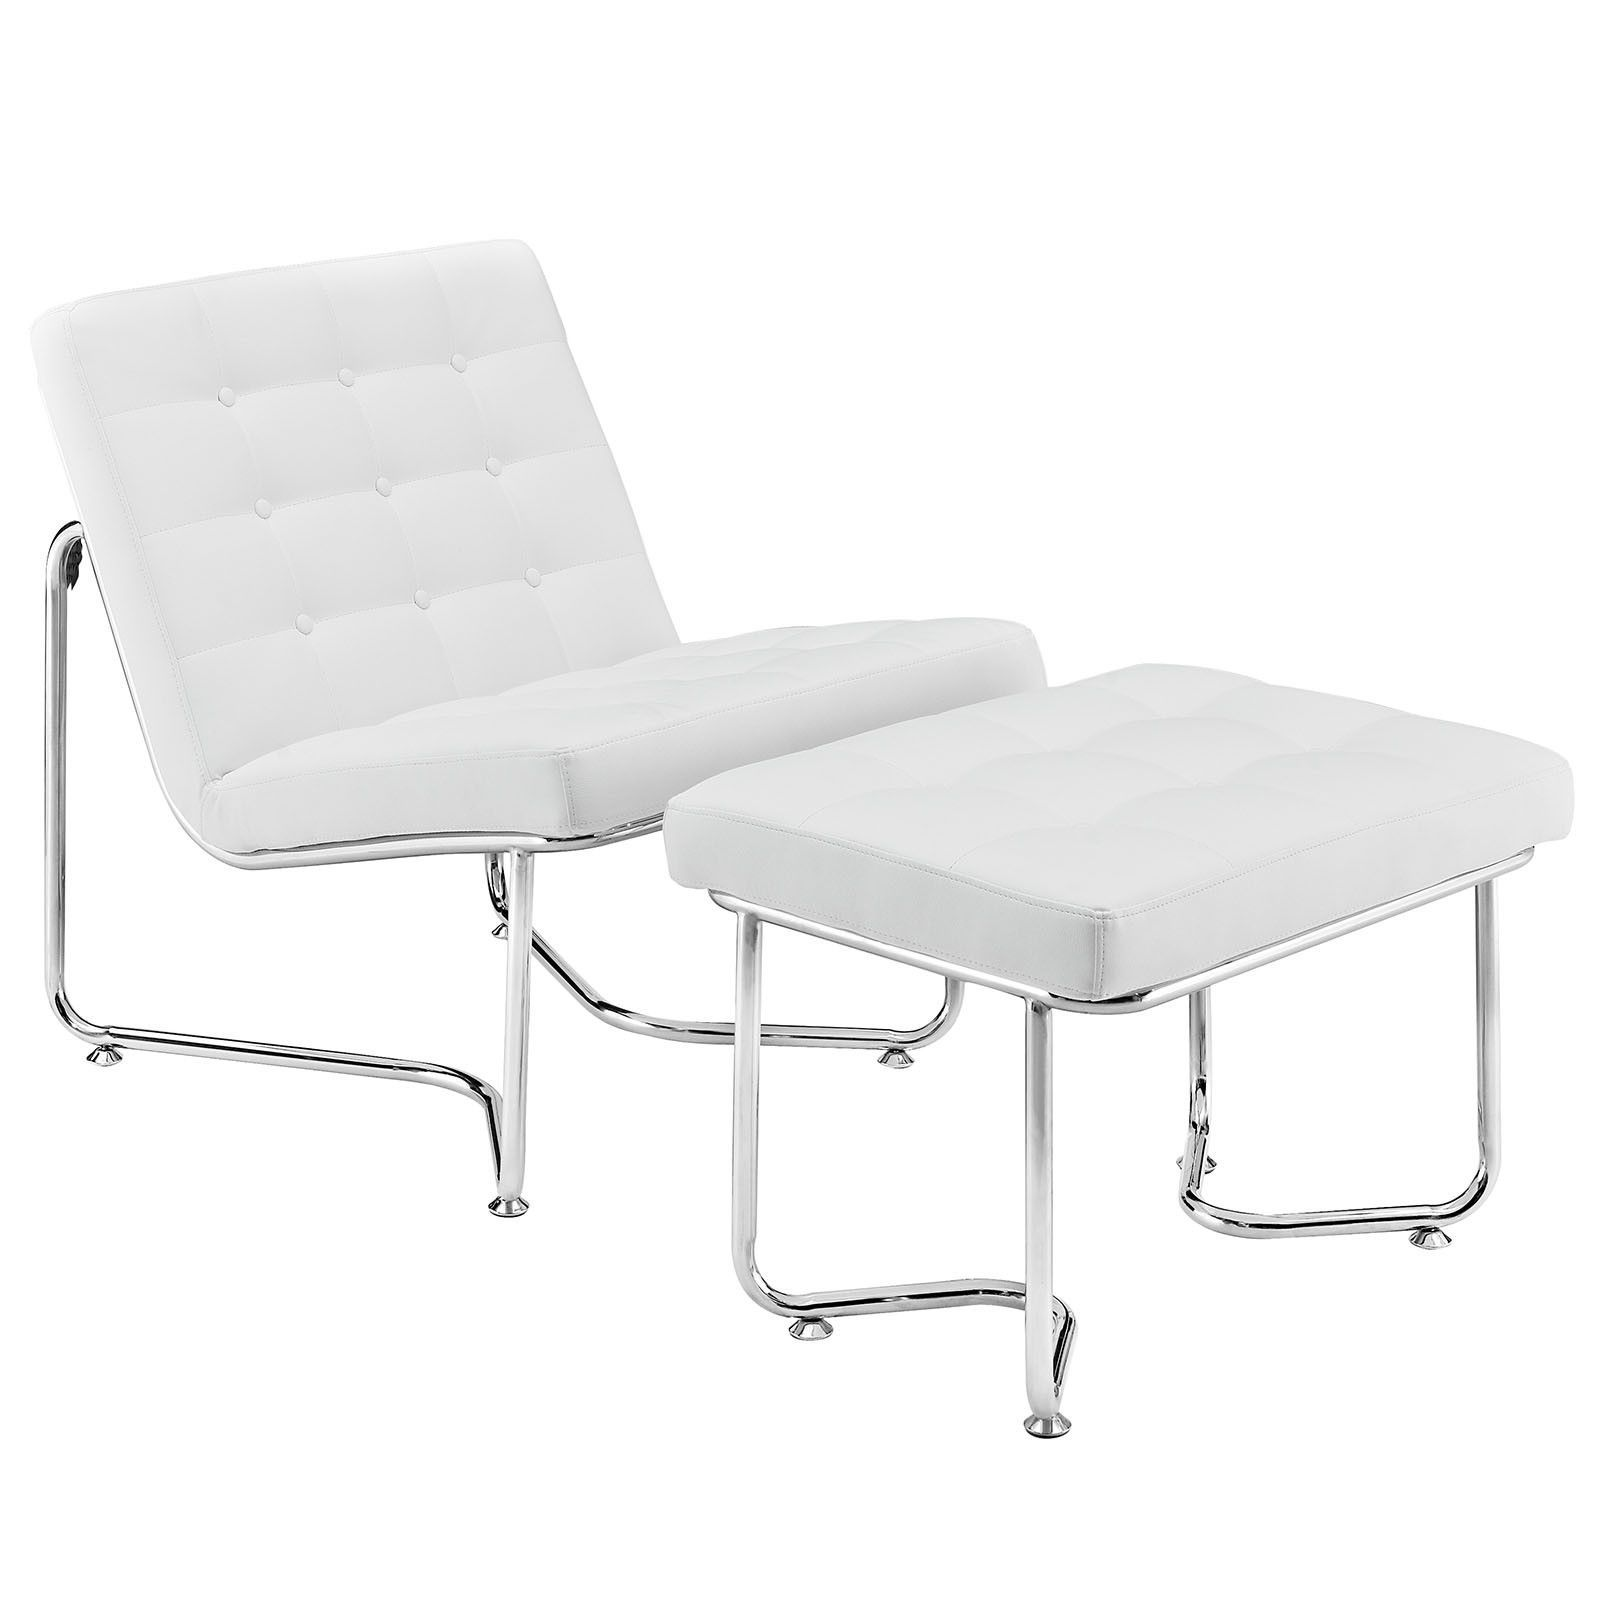 valencia lounge chair ottoman white leather white leather